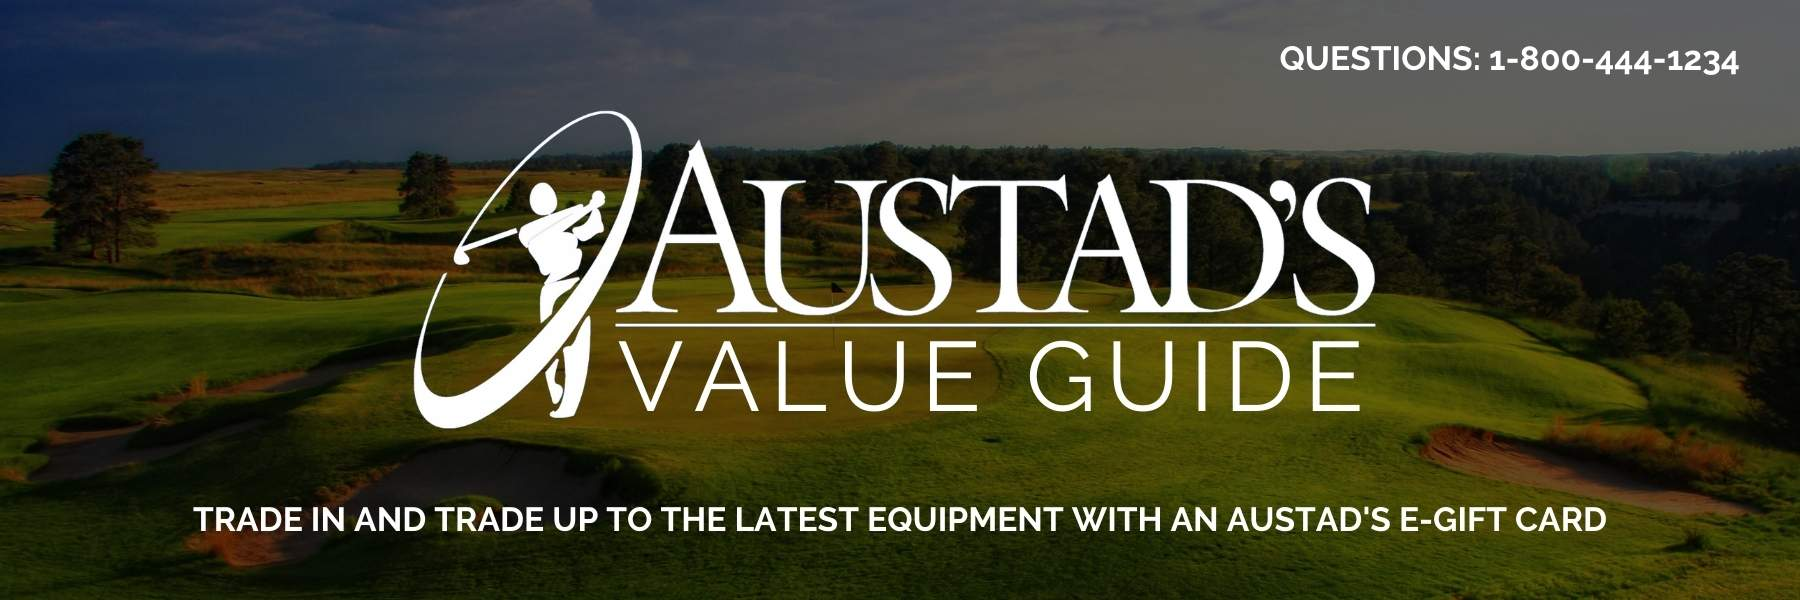 Austads Value Guide